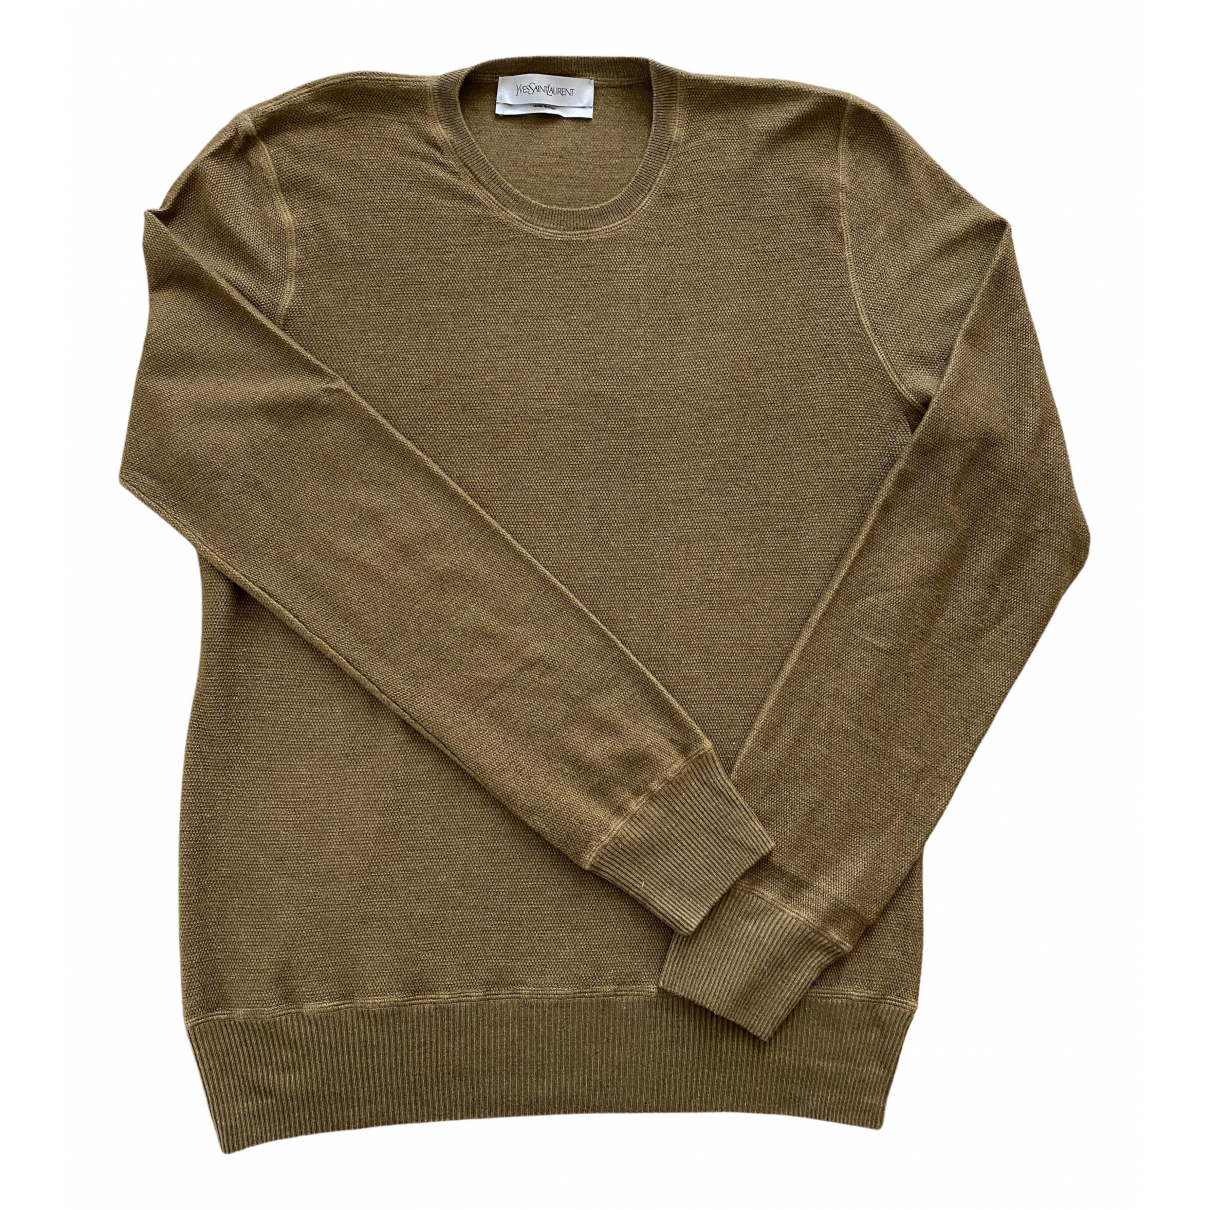 Yves Saint Laurent \N Camel Cashmere Knitwear & Sweatshirts for Men XL International